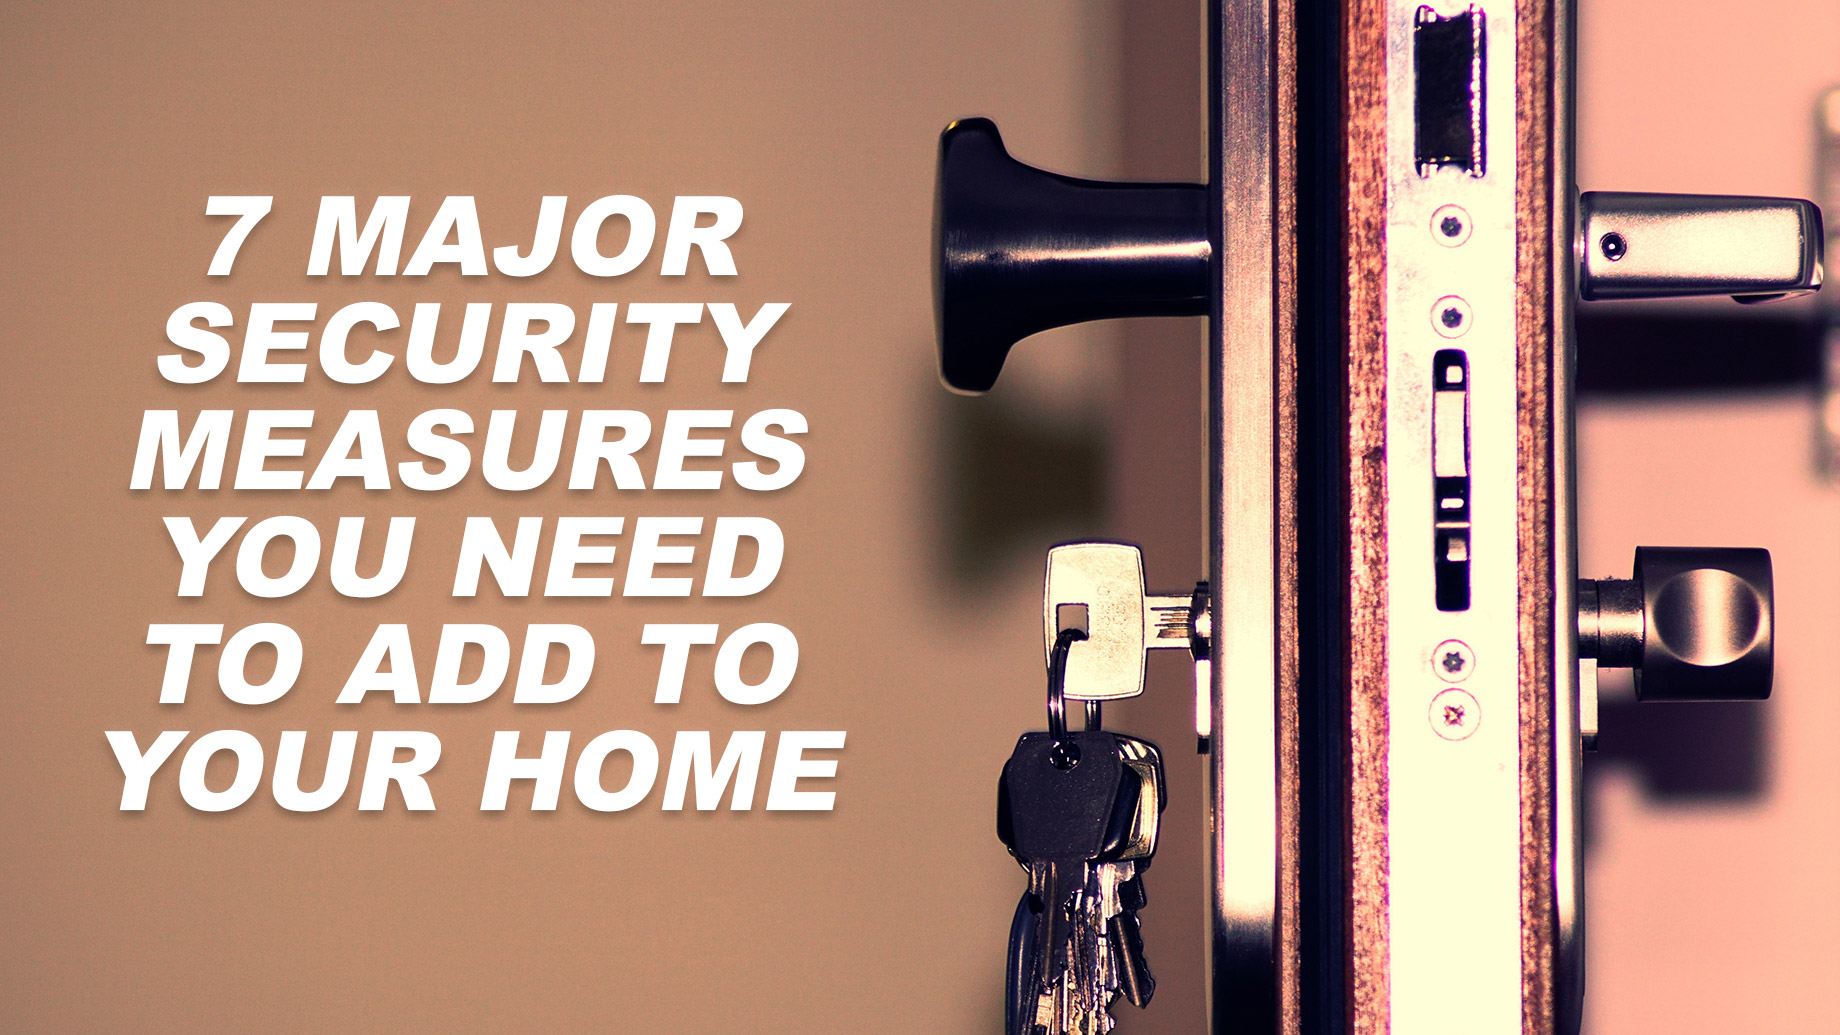 7 Major Security Measures You Need to Add to Your Home